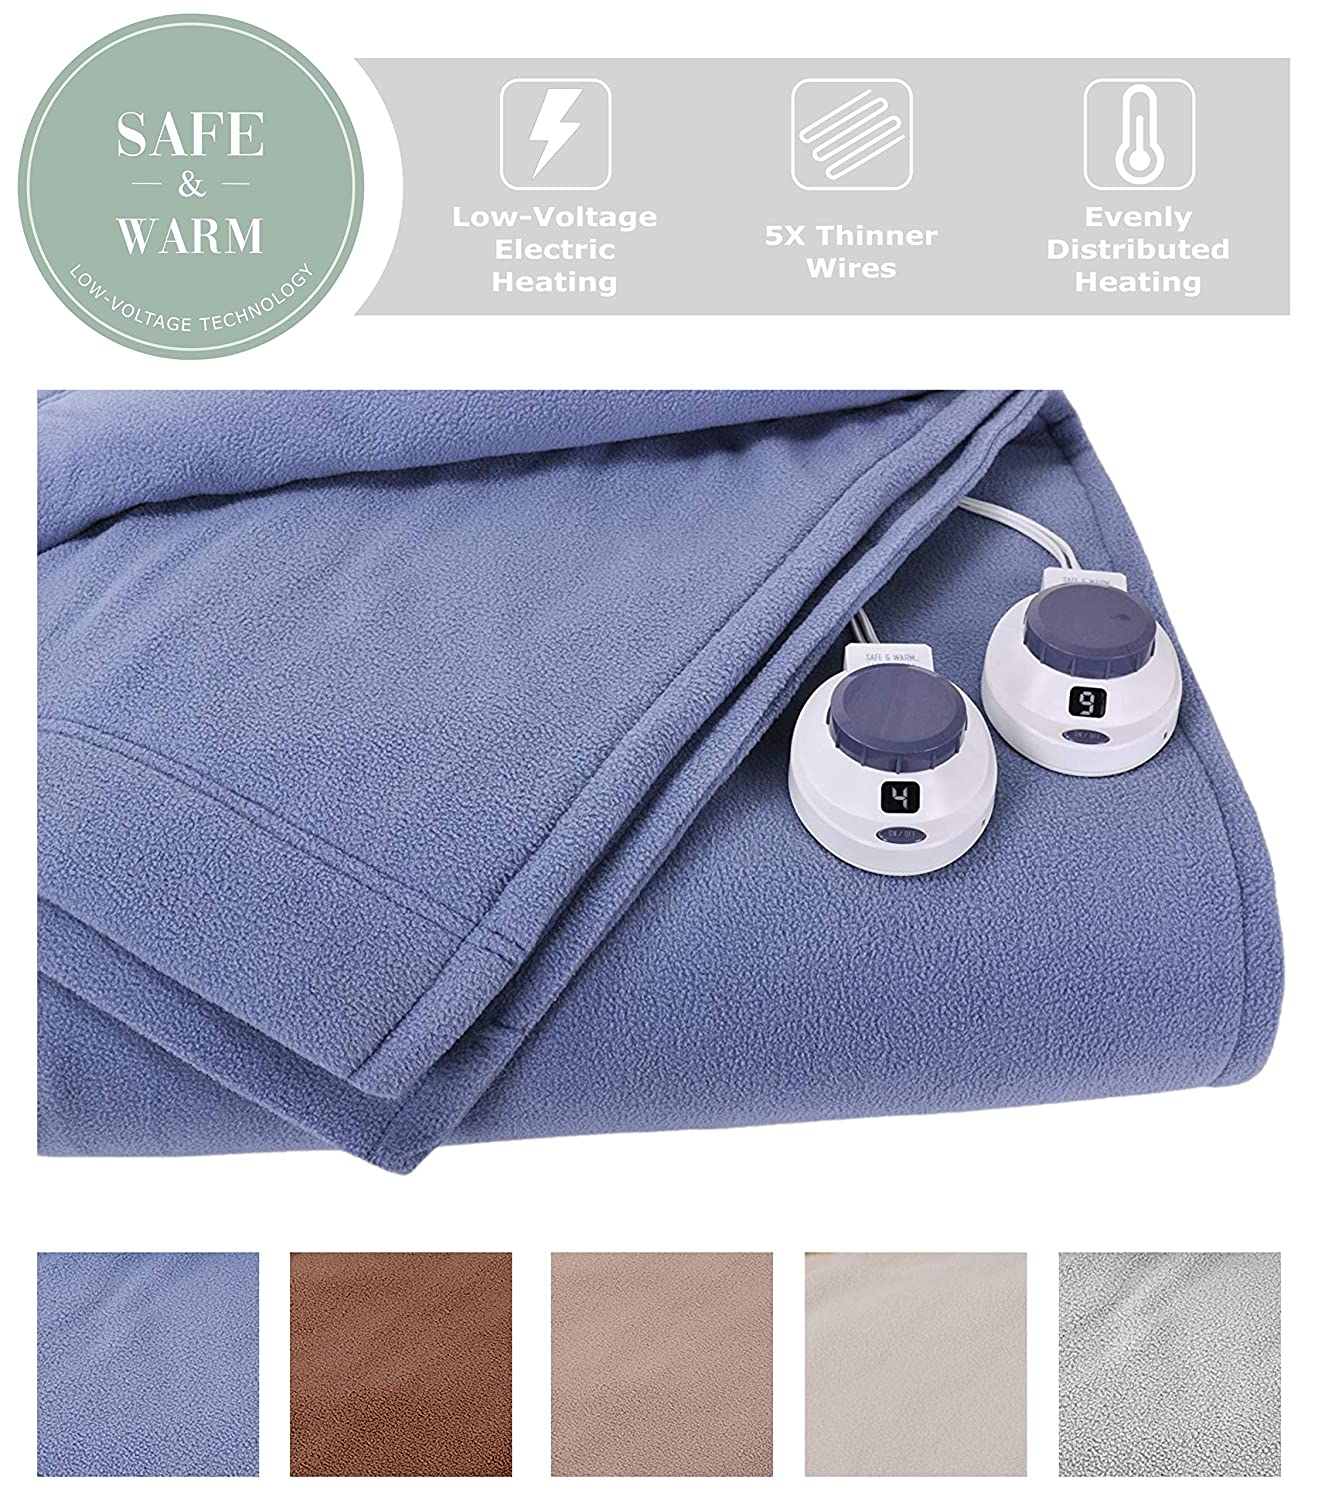 SoftHeat by Perfect Fit | Luxury Micro-Fleece Low-Voltage Electric Heated Blanket (King, Slate Blue)